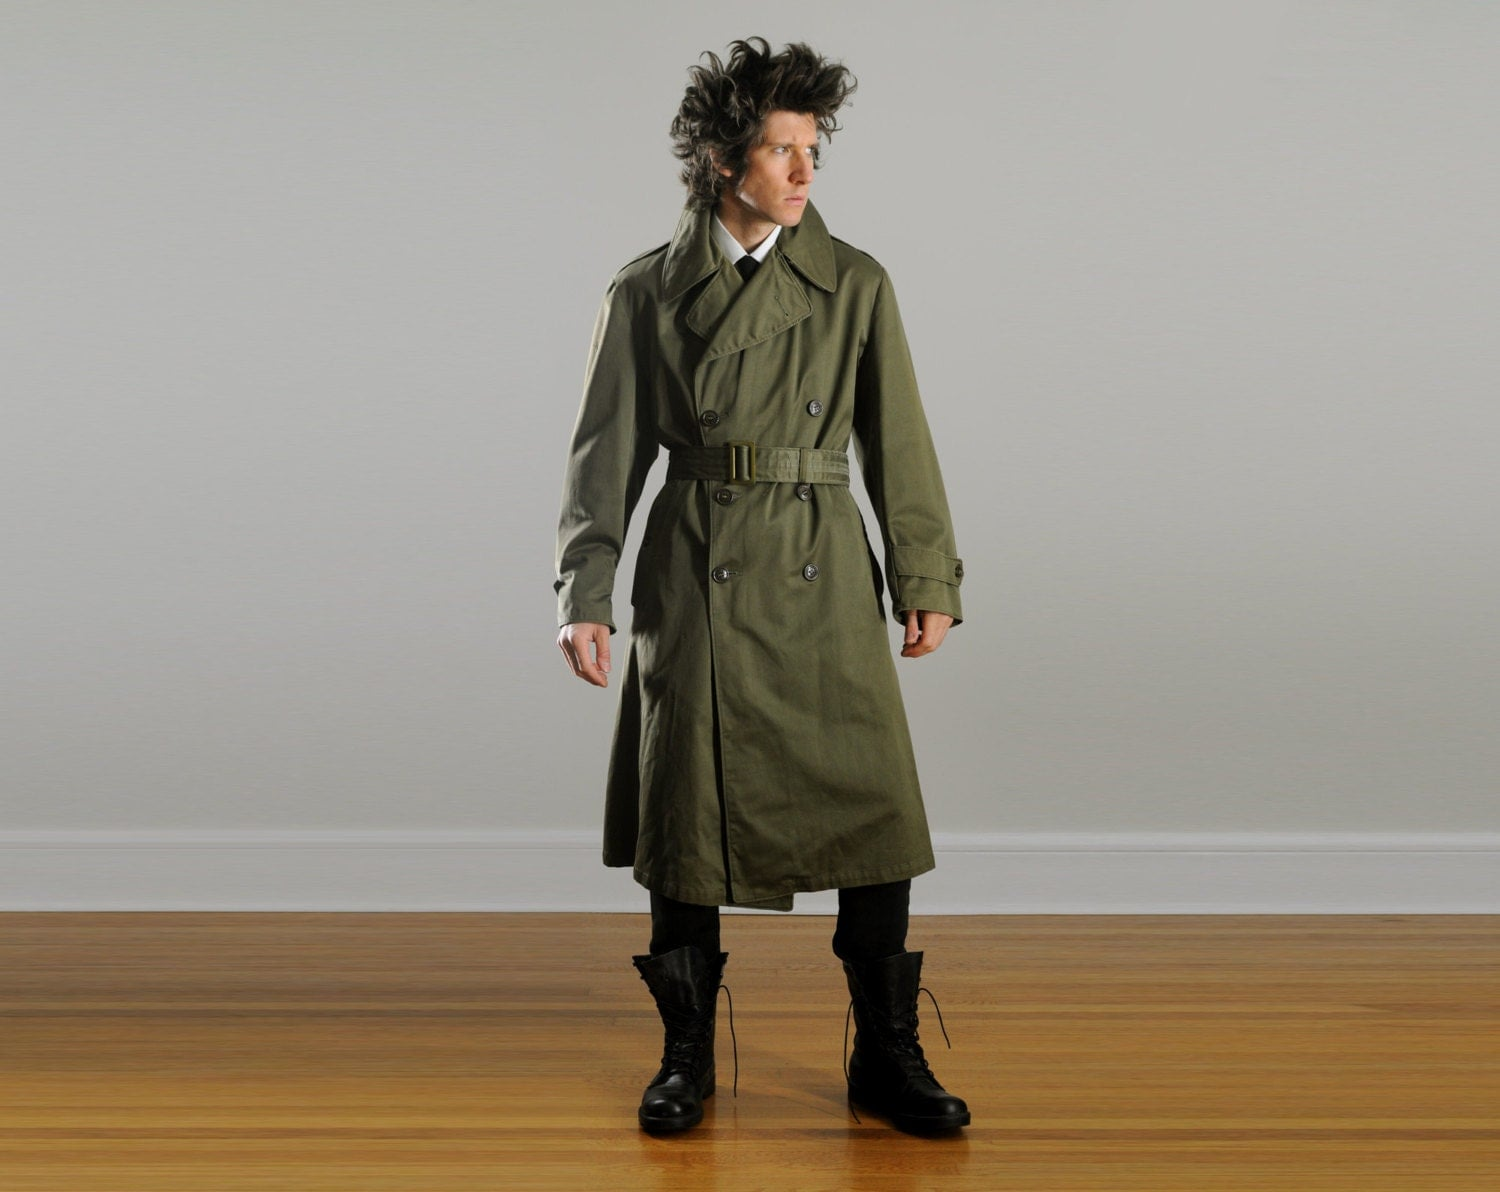 Vintage Military Trench Coat Army Drab Green Belted Waist